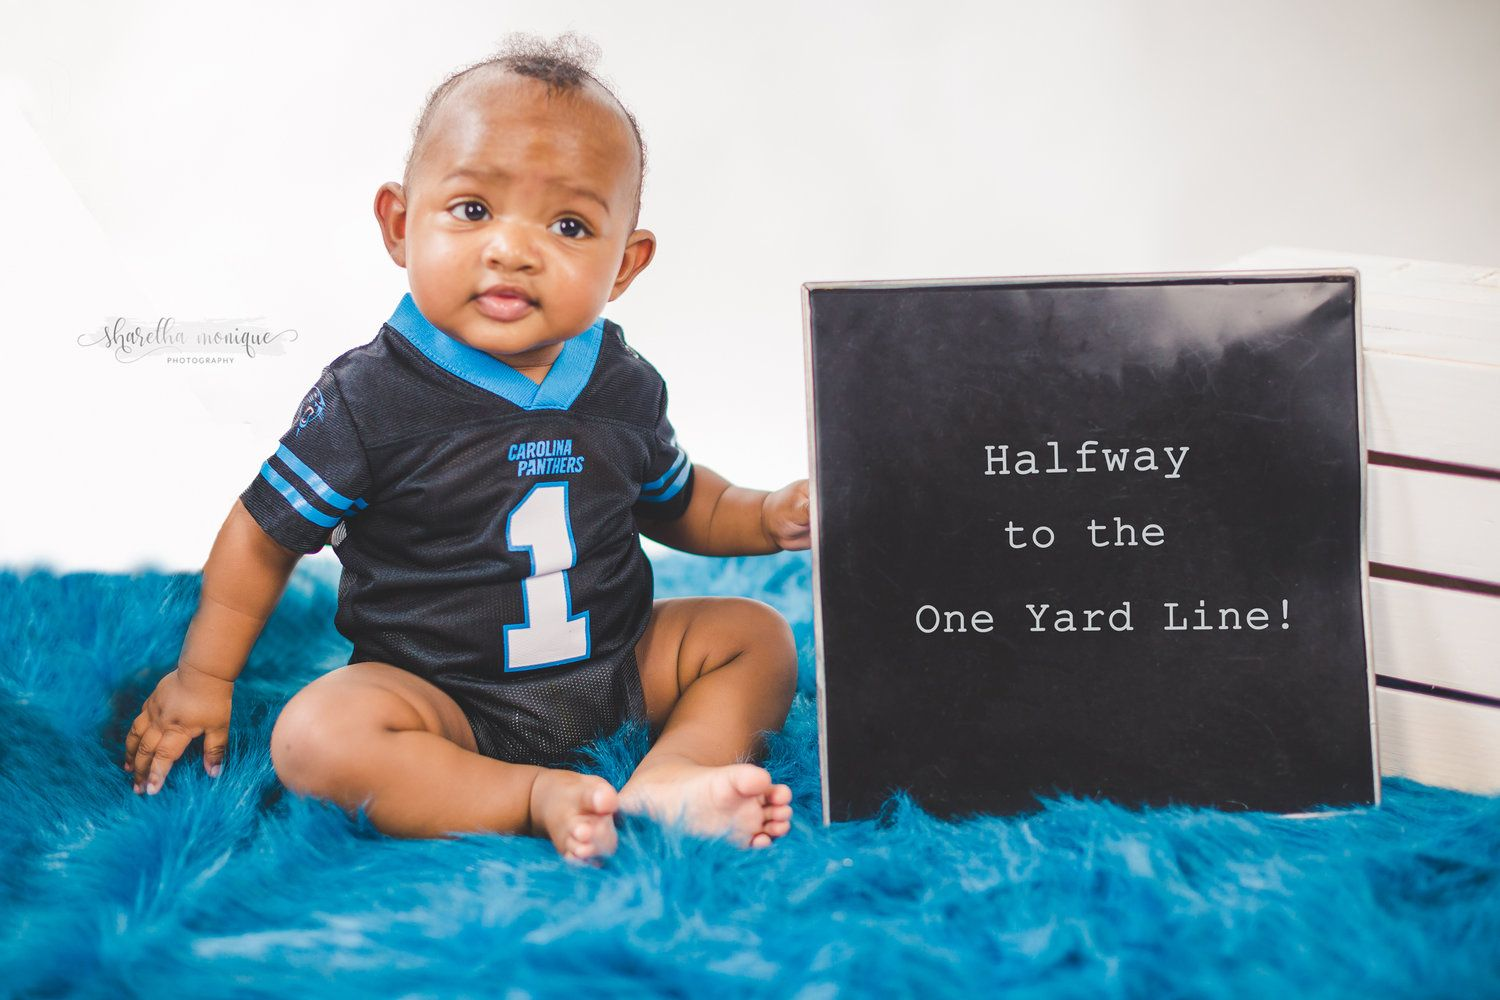 1e934bbe6 Carolina Panthers-Inspired 6 Month Baby Milestone Session | The Best ...